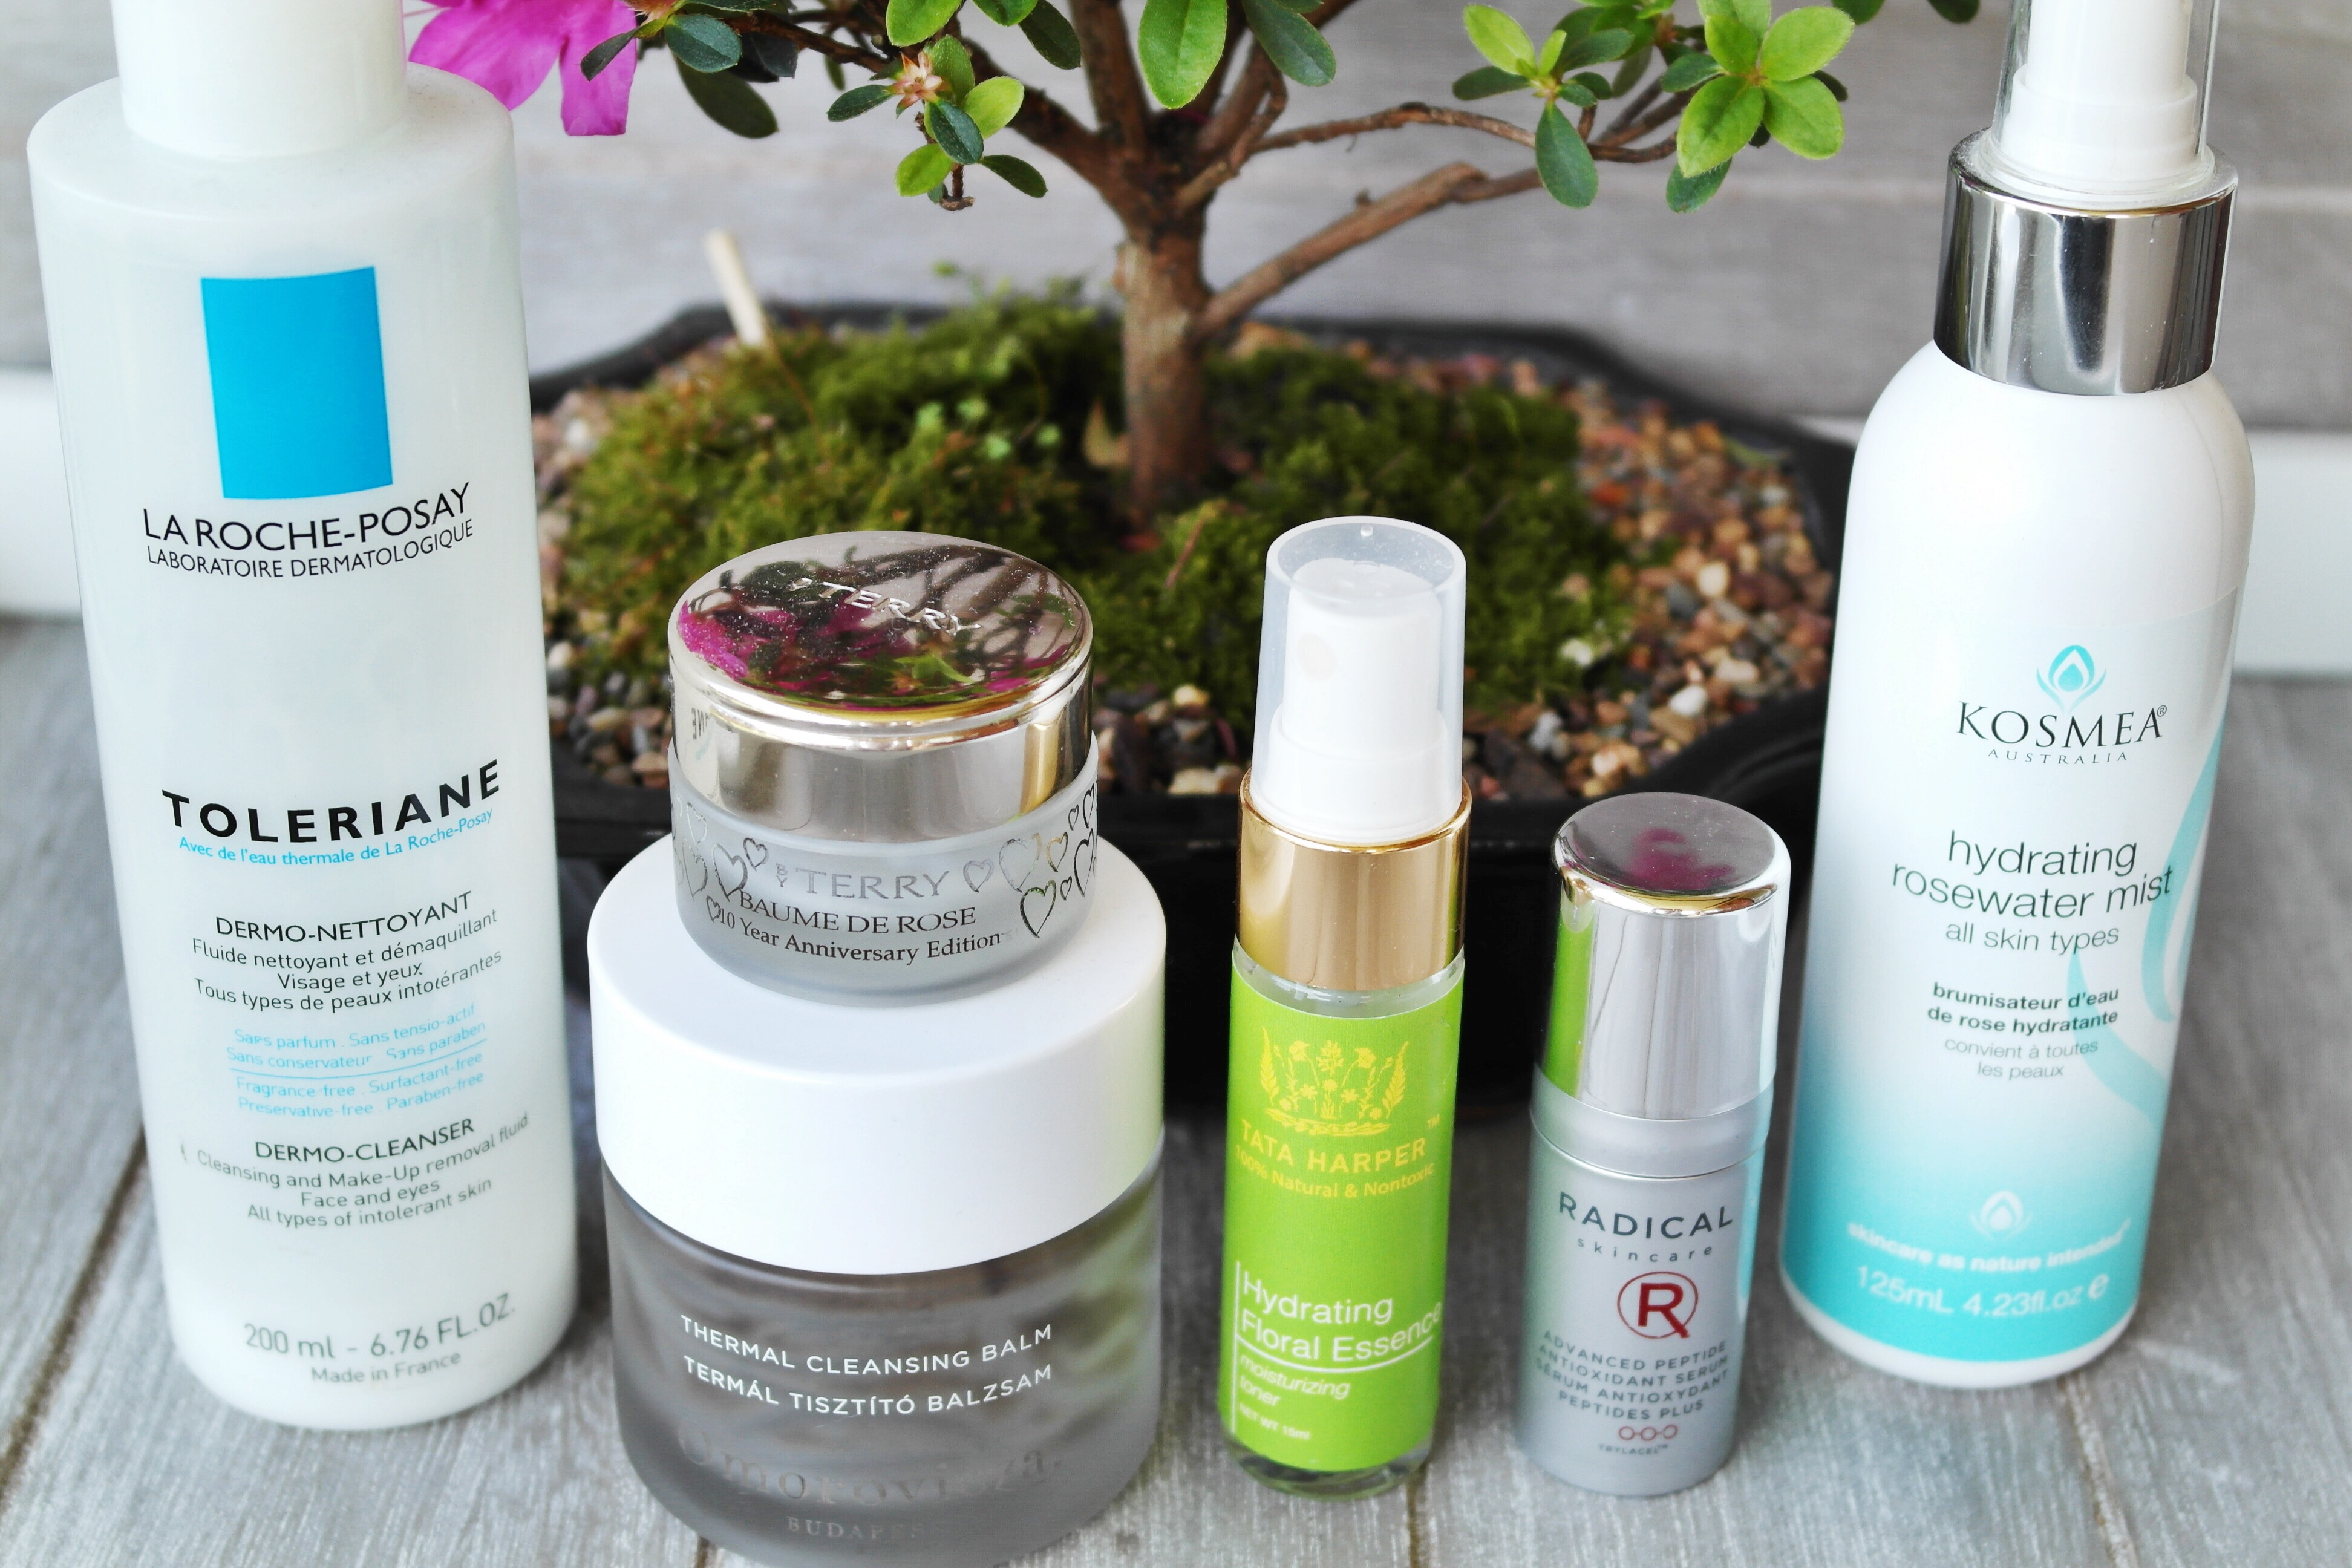 La Roche Posay Toleriane Dermo-Cleanser, By Terry Baume De Rose, Omorovicza Thermal Cleansing Balm, Tata Harper Hydrating Floral Essence, Radical Skincare Advanced Peptide Antioxidant Serum, Kosmea Hydrating Floral Mist